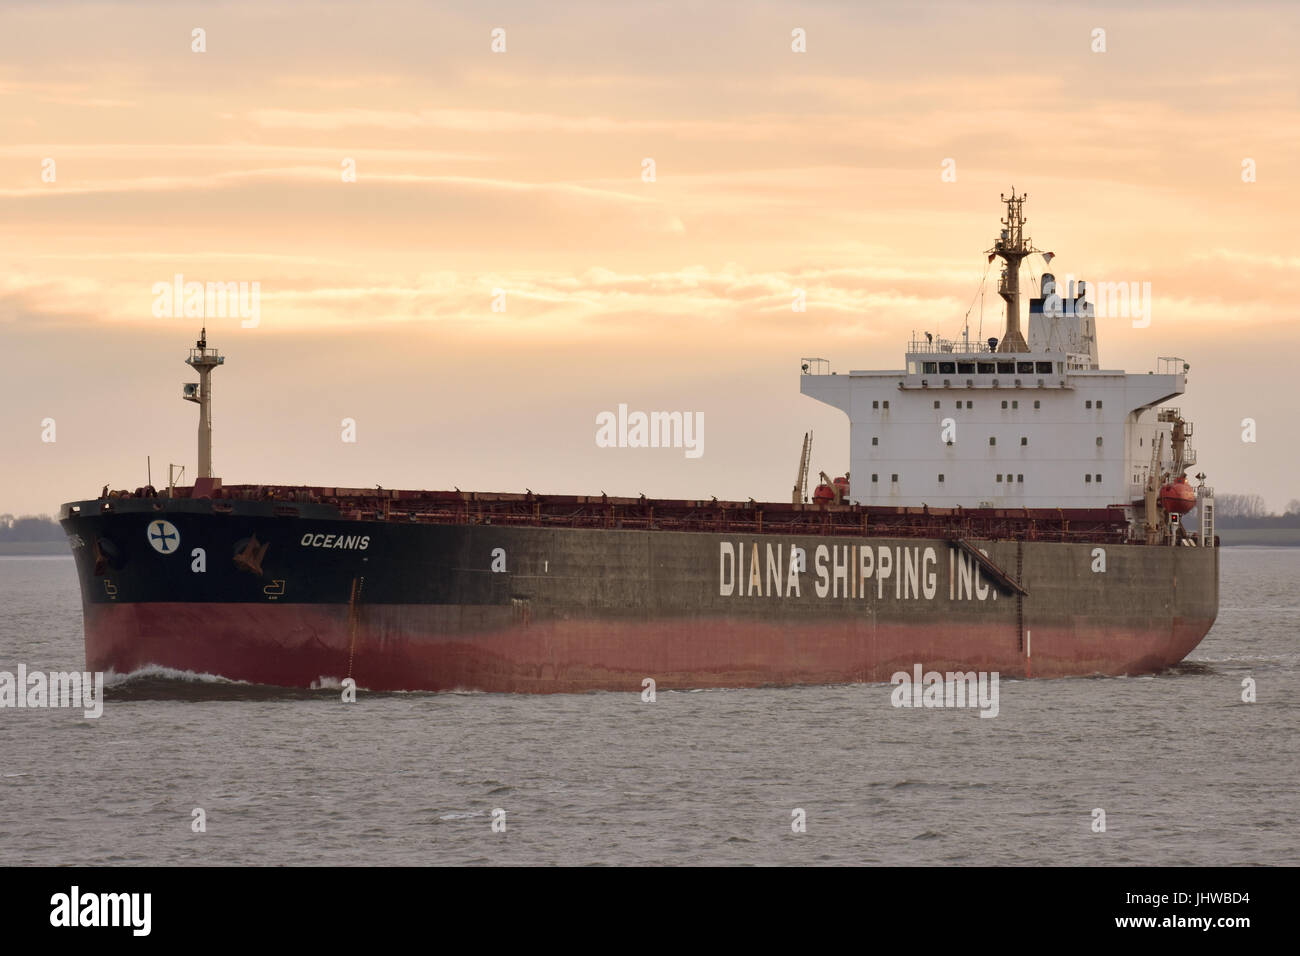 Panmax Bulkcarrier Oceanis off Cuxhaven - Stock Image